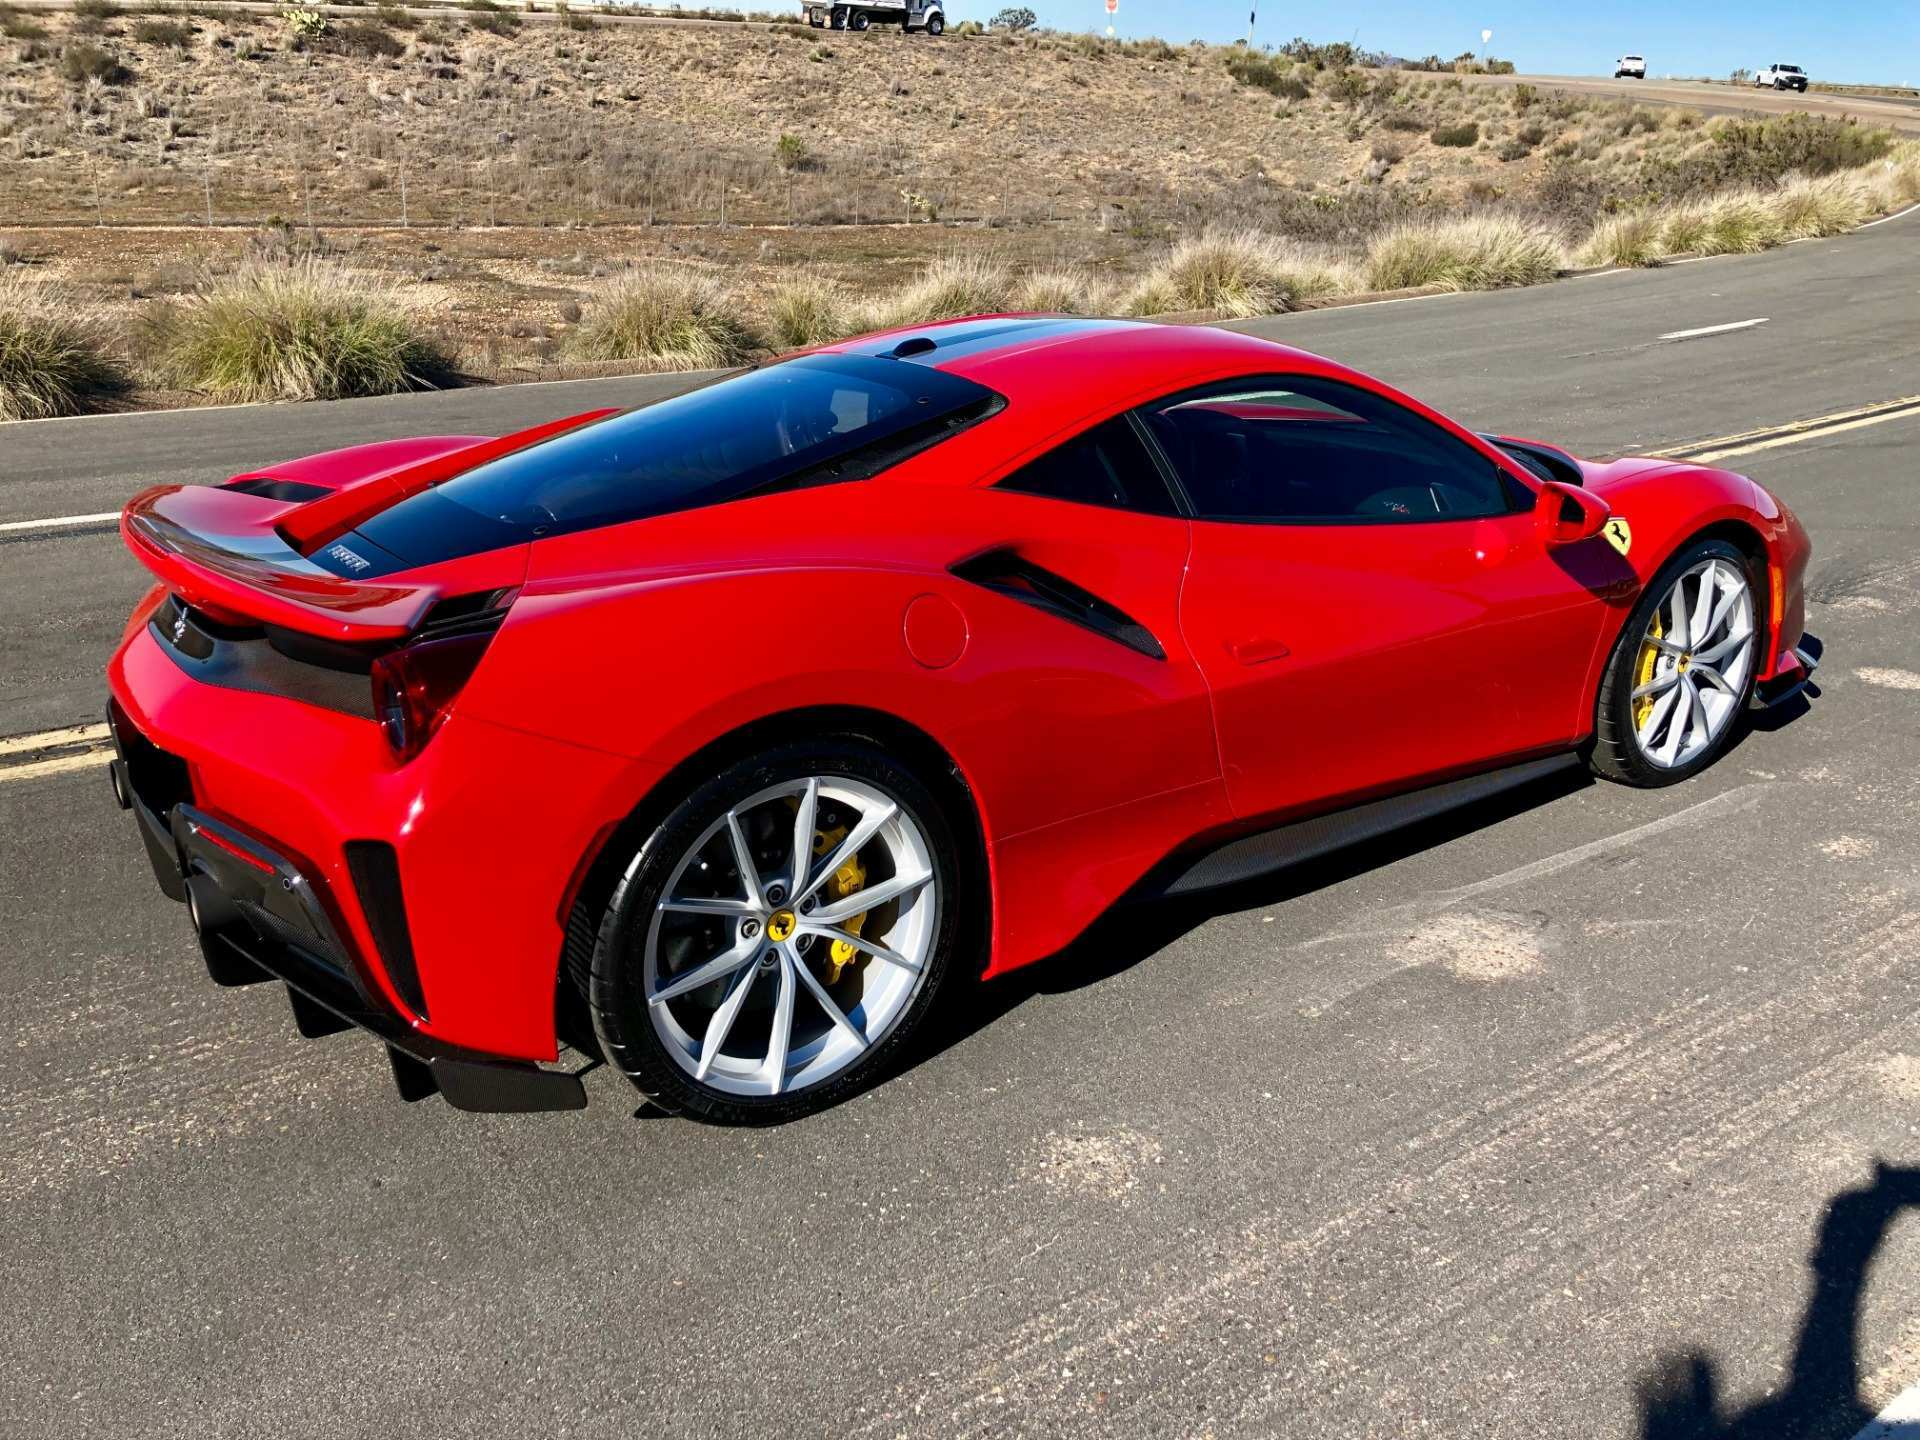 81 Great 2019 Ferrari 488 Pista For Sale Prices by 2019 Ferrari 488 Pista For Sale